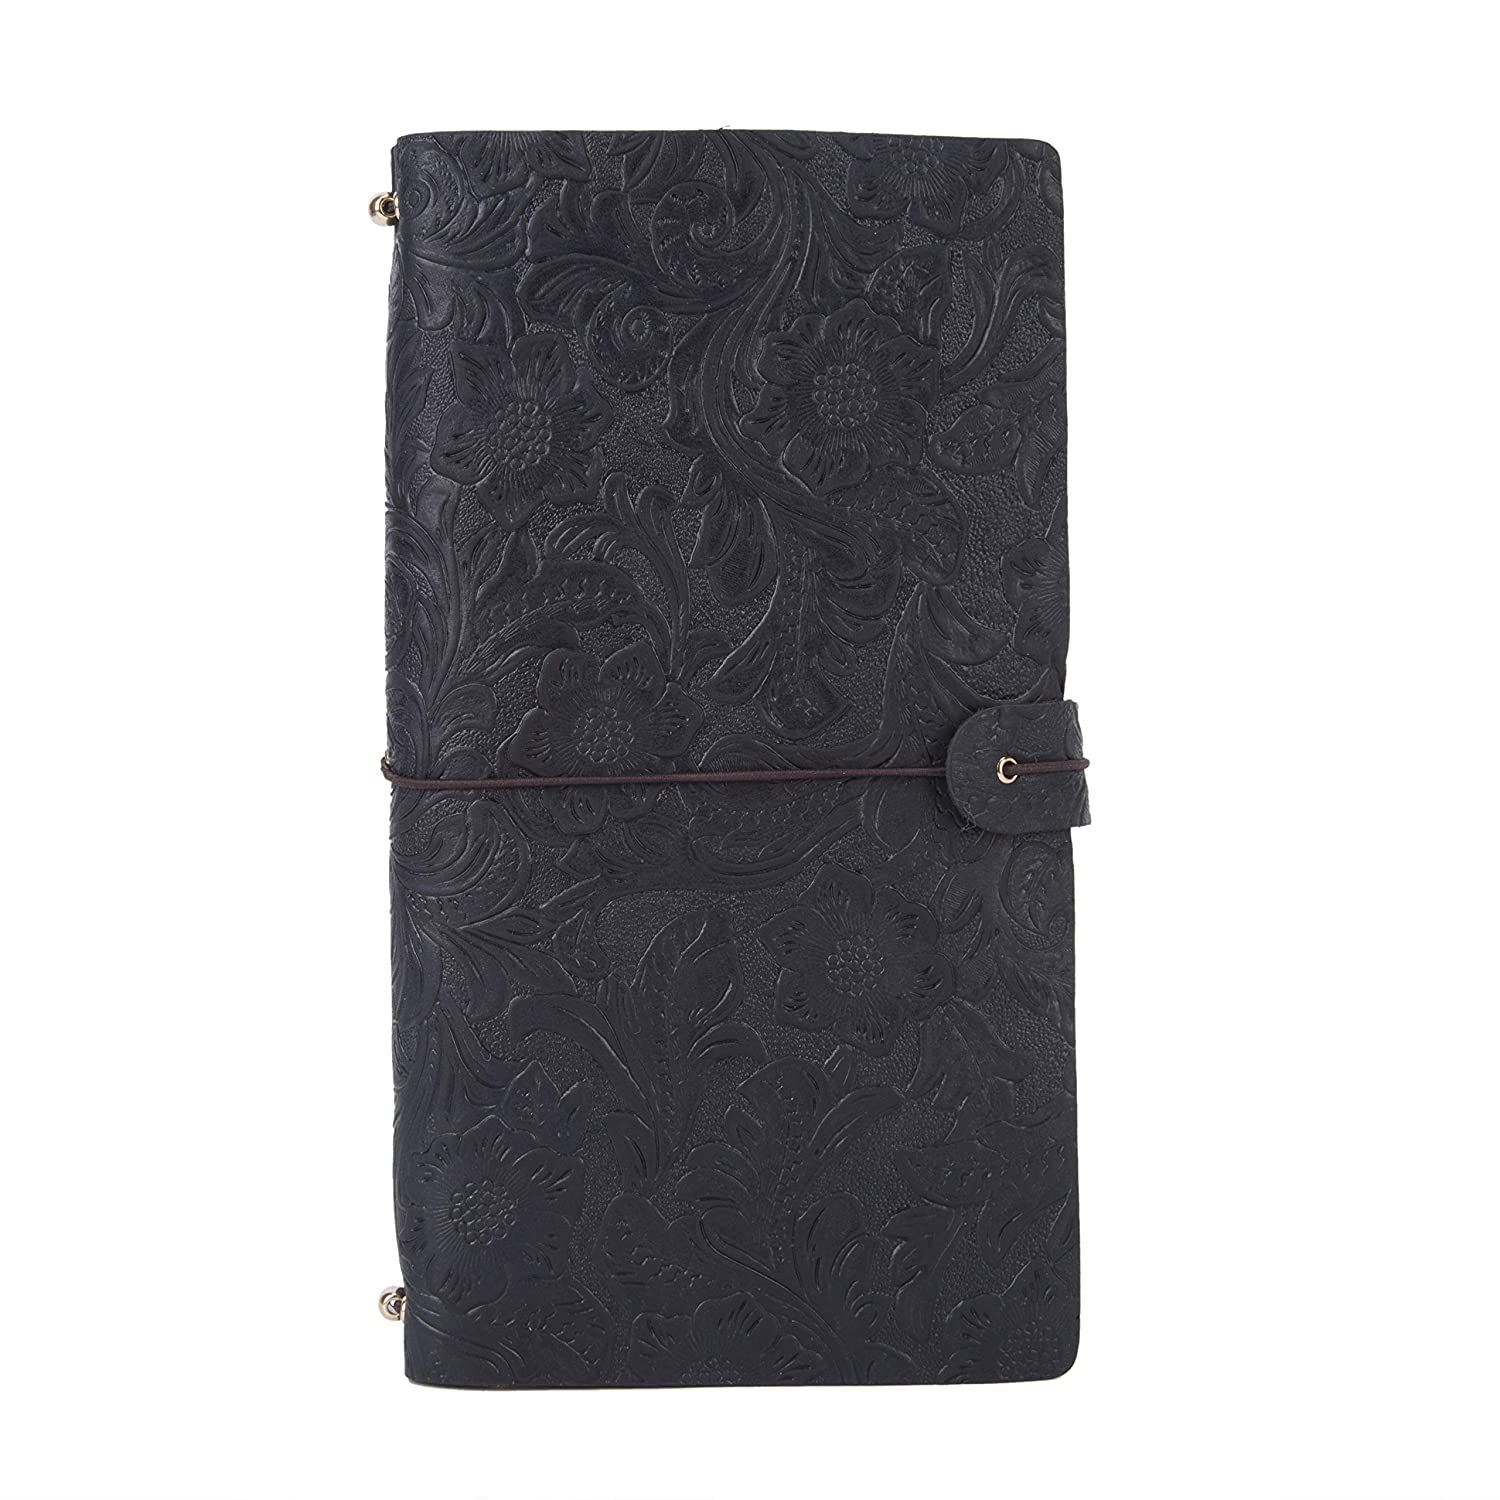 Vintage Embossed Leather Journal Writing Travelers Notebook,UBaymax Refillable Handmade Leather Bound Daily Planner Calendar for Men Women L Size